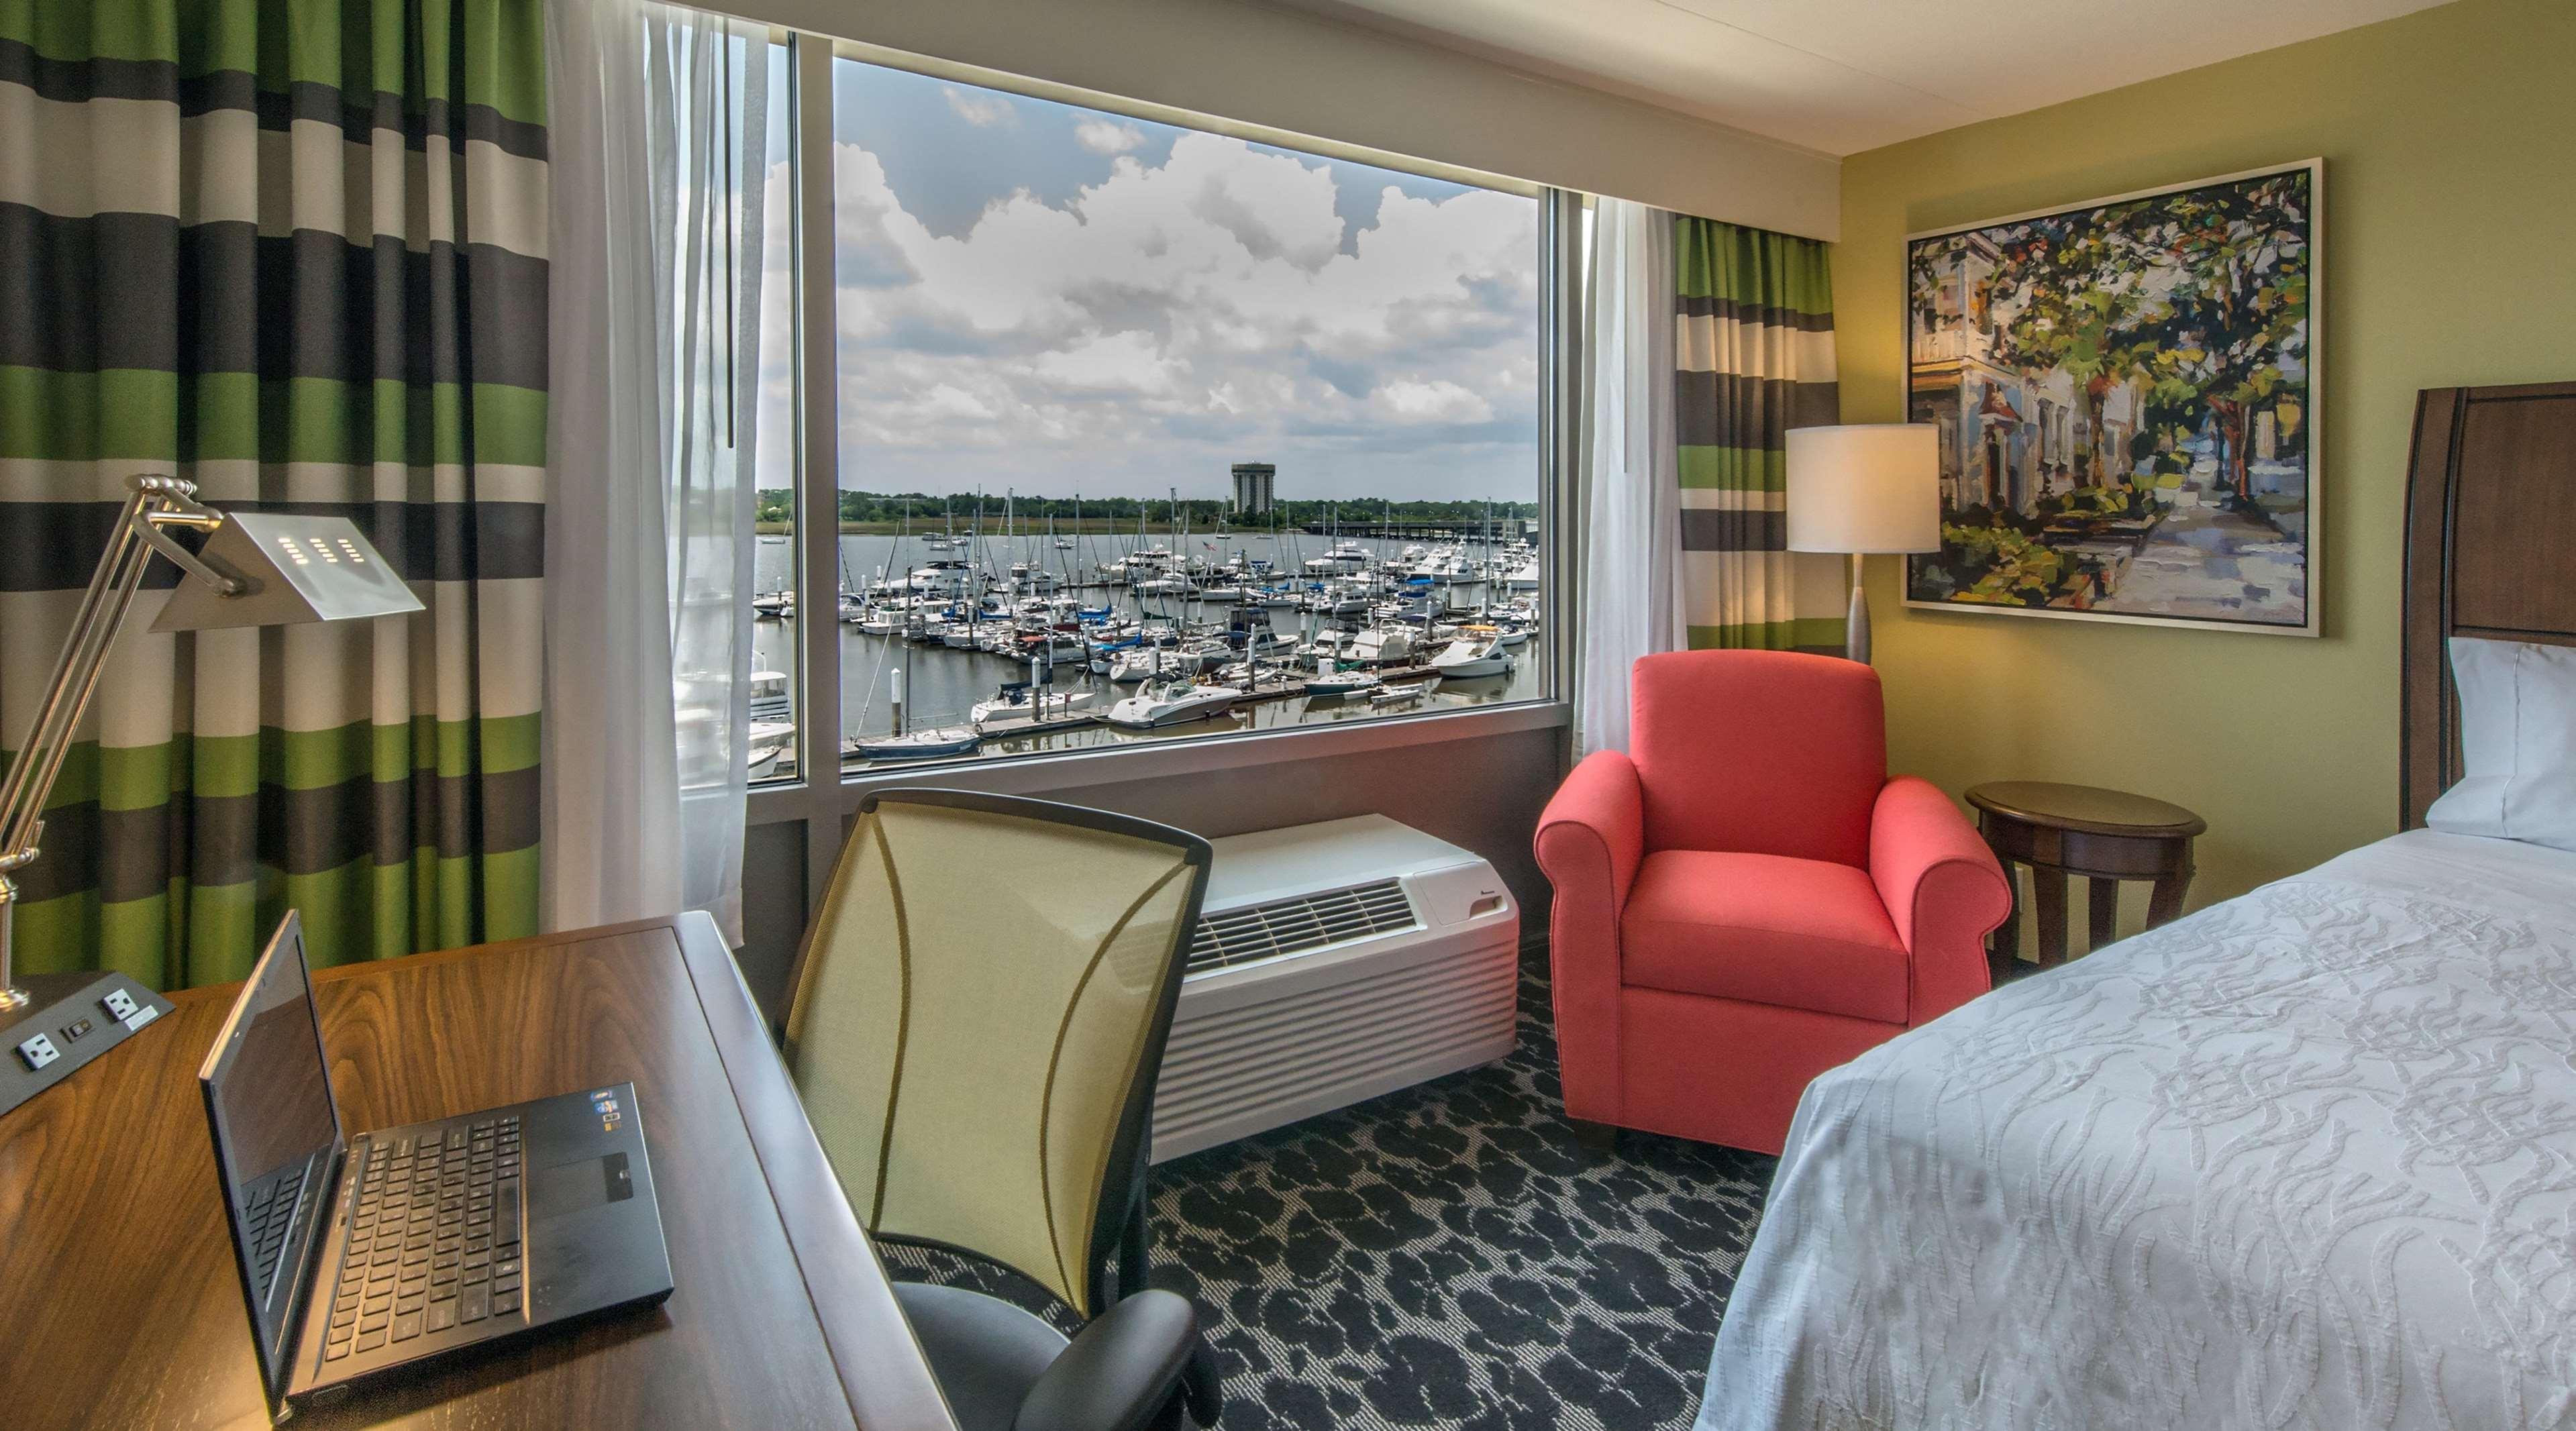 Hilton Garden Inn Charleston Waterfront Downtown Charleston South Carolina Sc